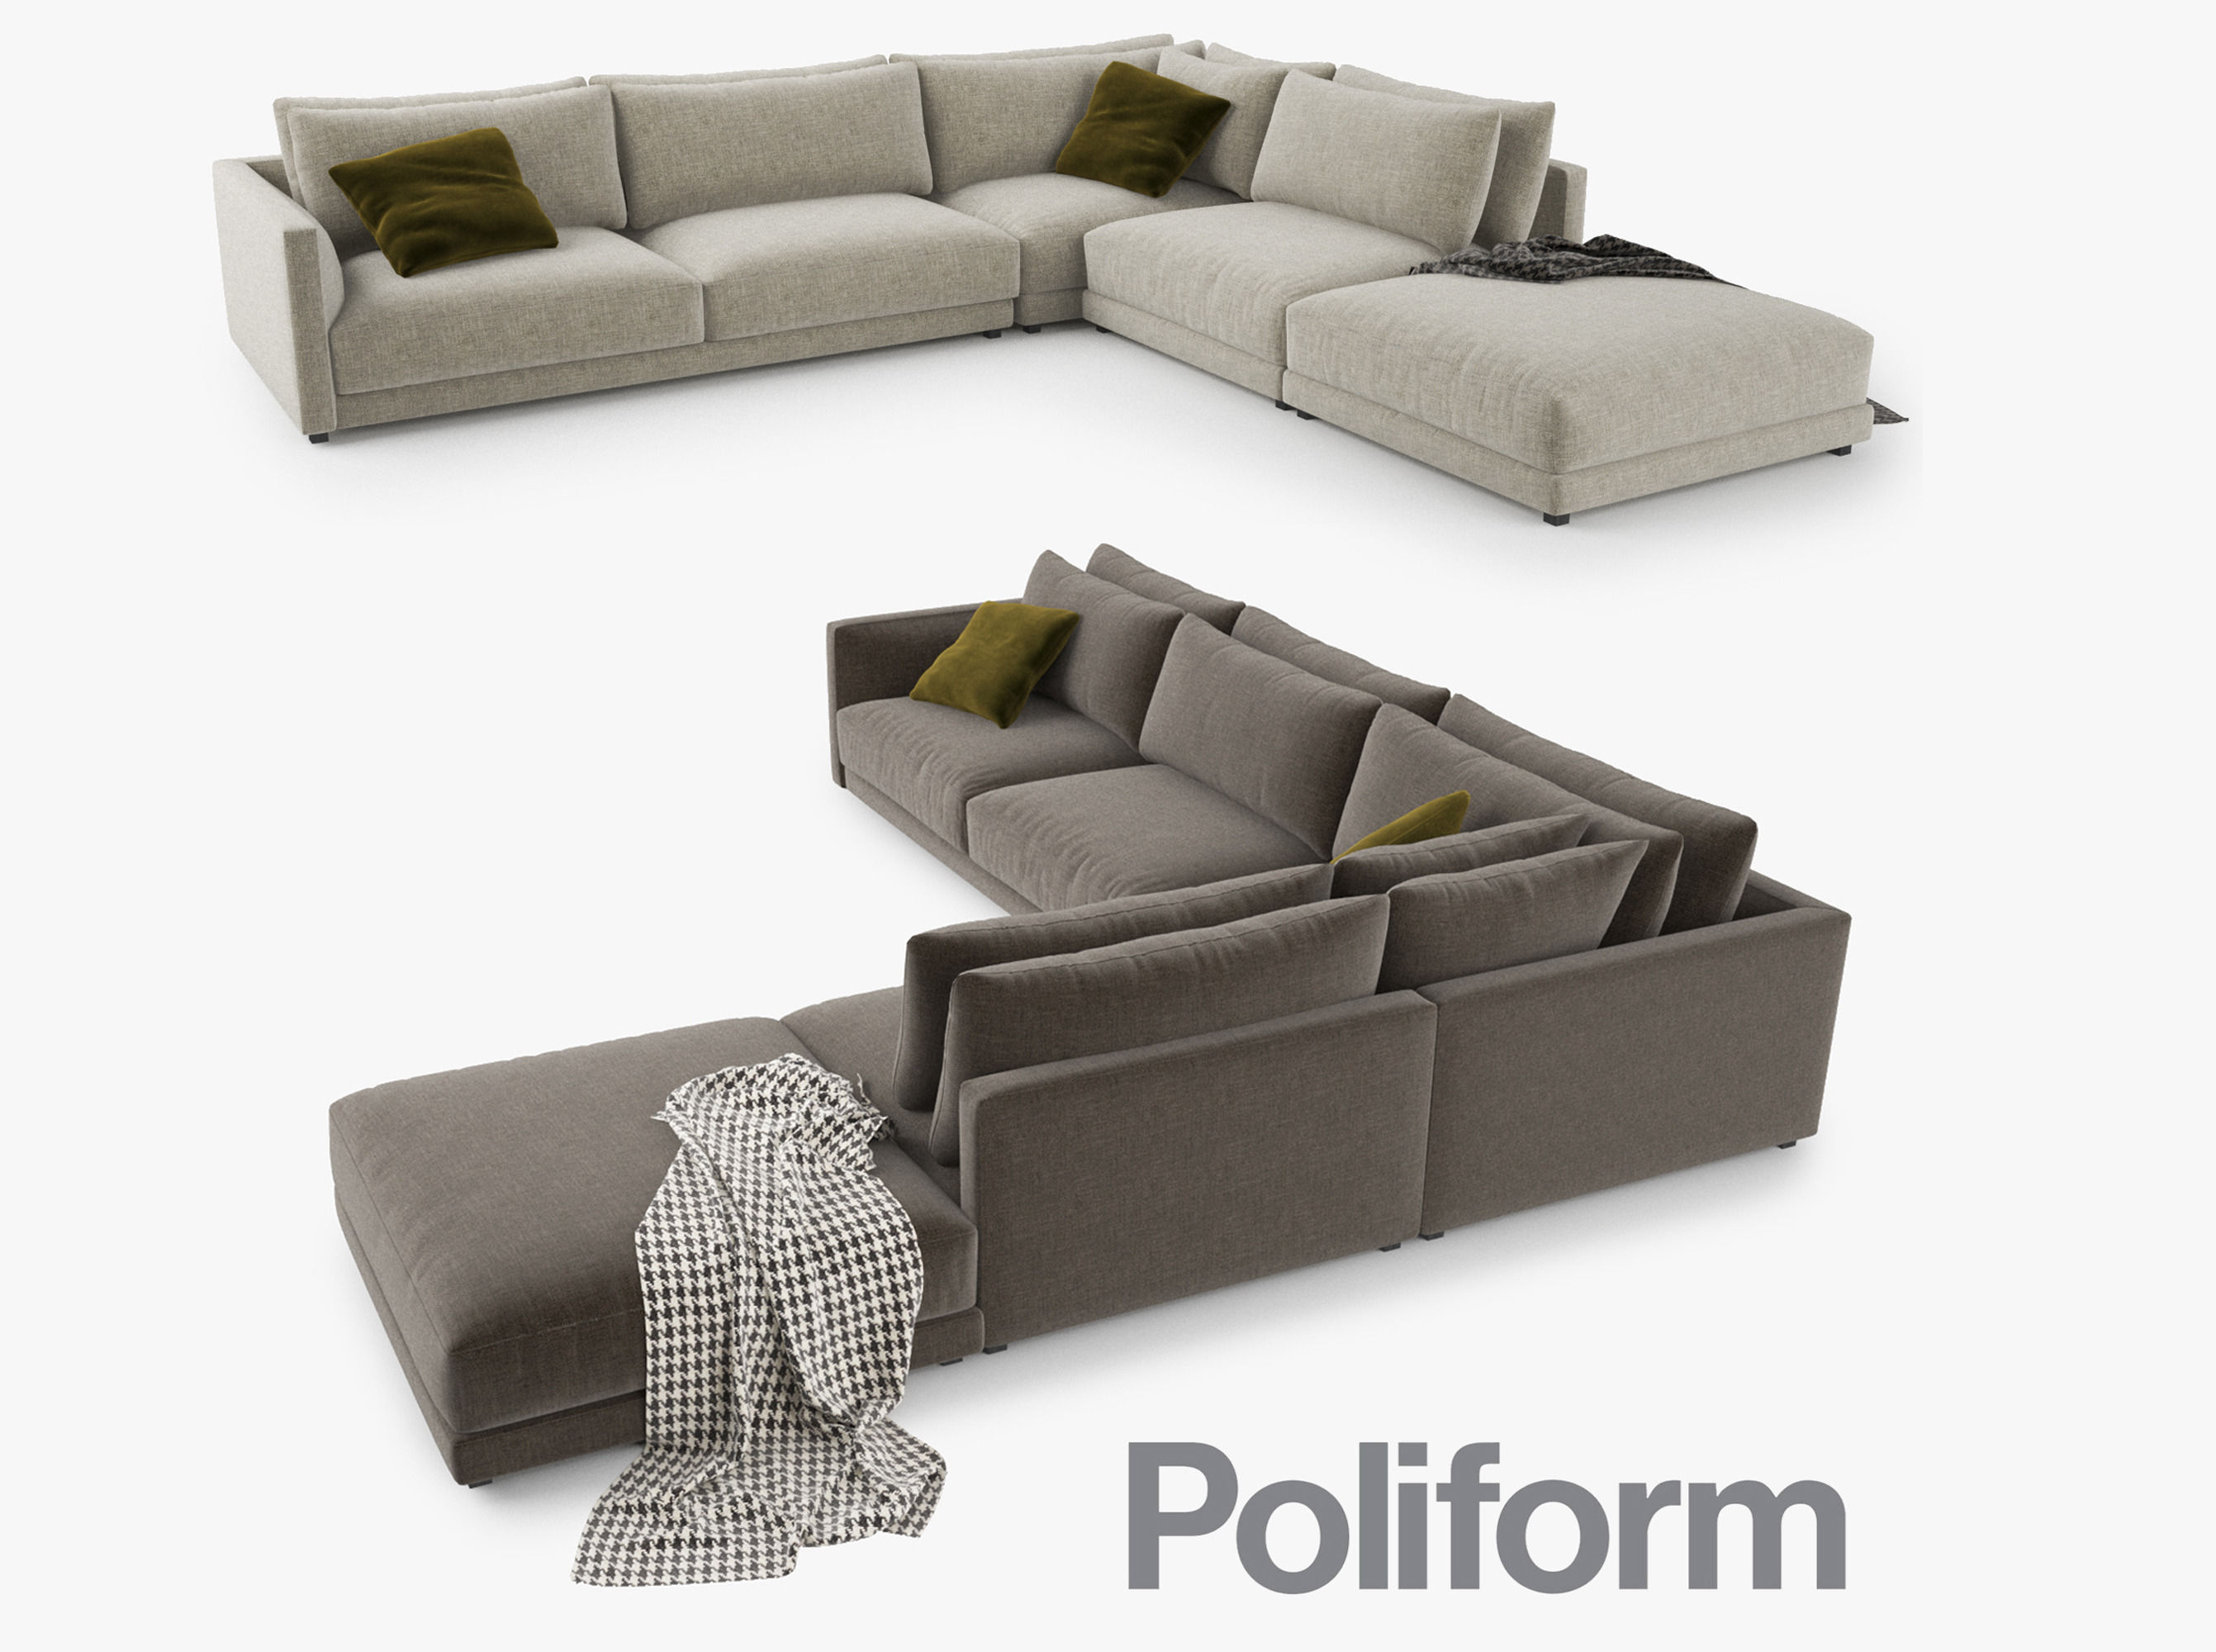 Poliform Bristol Sofa 3D Model